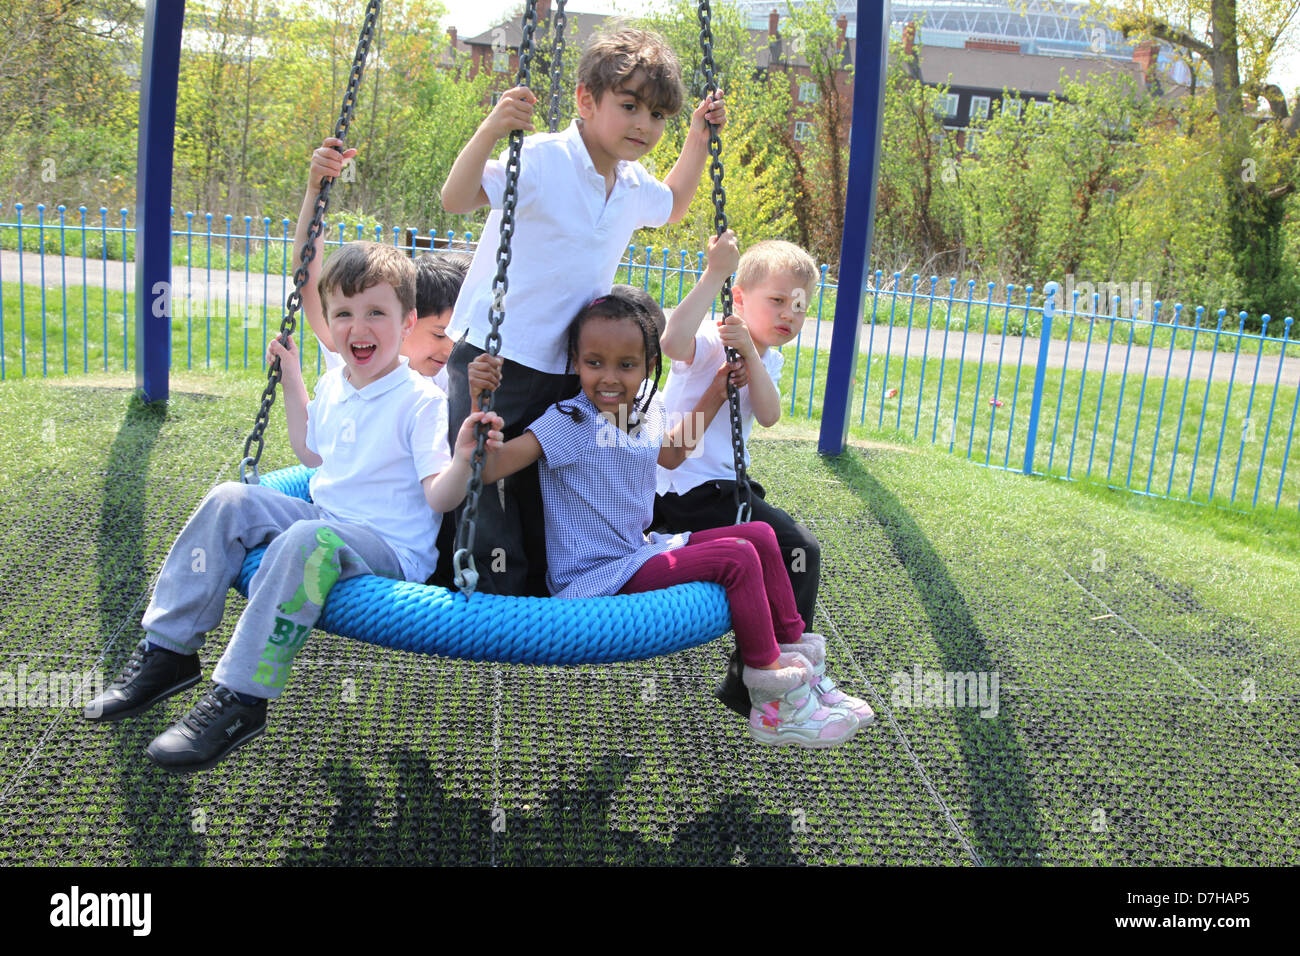 Children playing on a tyre  / tire swing in a London playground. - Stock Image